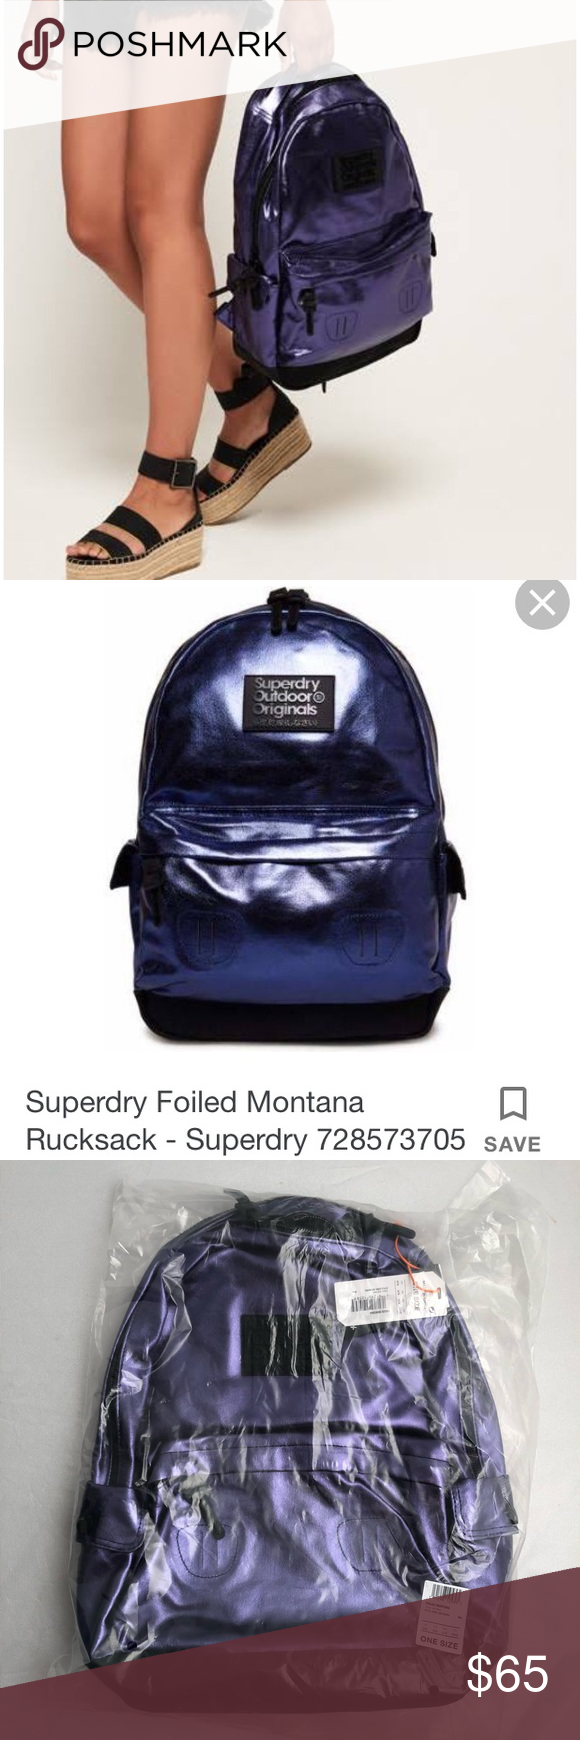 c12d87763f70e SuperDry Foiled Montana Navy metallic rucksack SuperDry Foiled Montana Navy  metallic rucksack backpack. Brand new in bag with tags. Only took out for  pics.